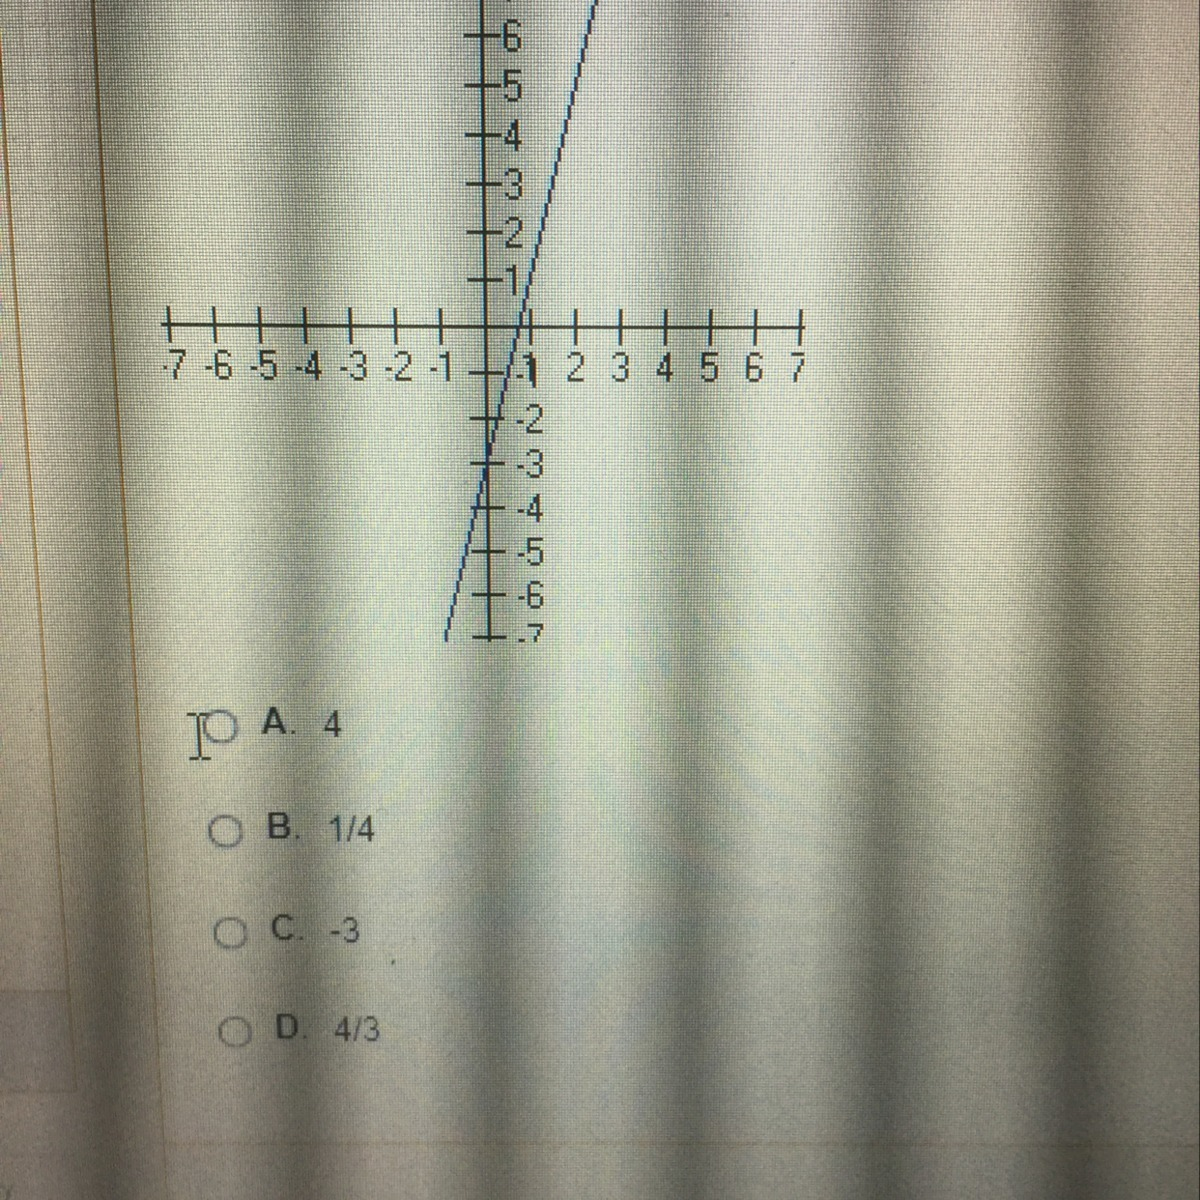 What Is The Slope Of The Graph Shown Below